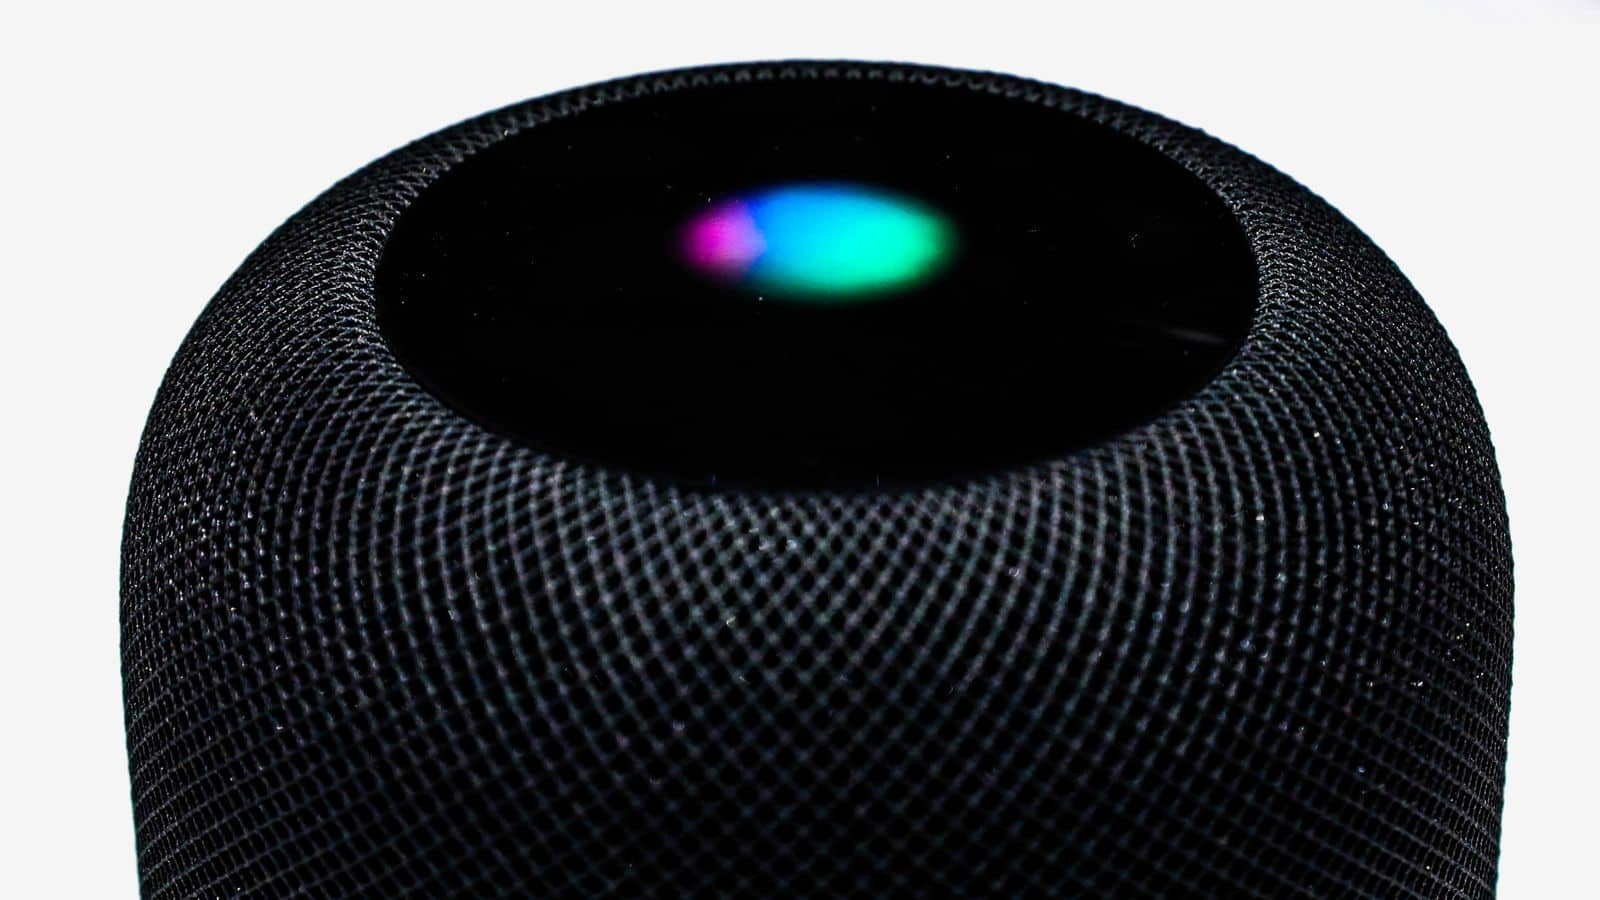 HomePod in China